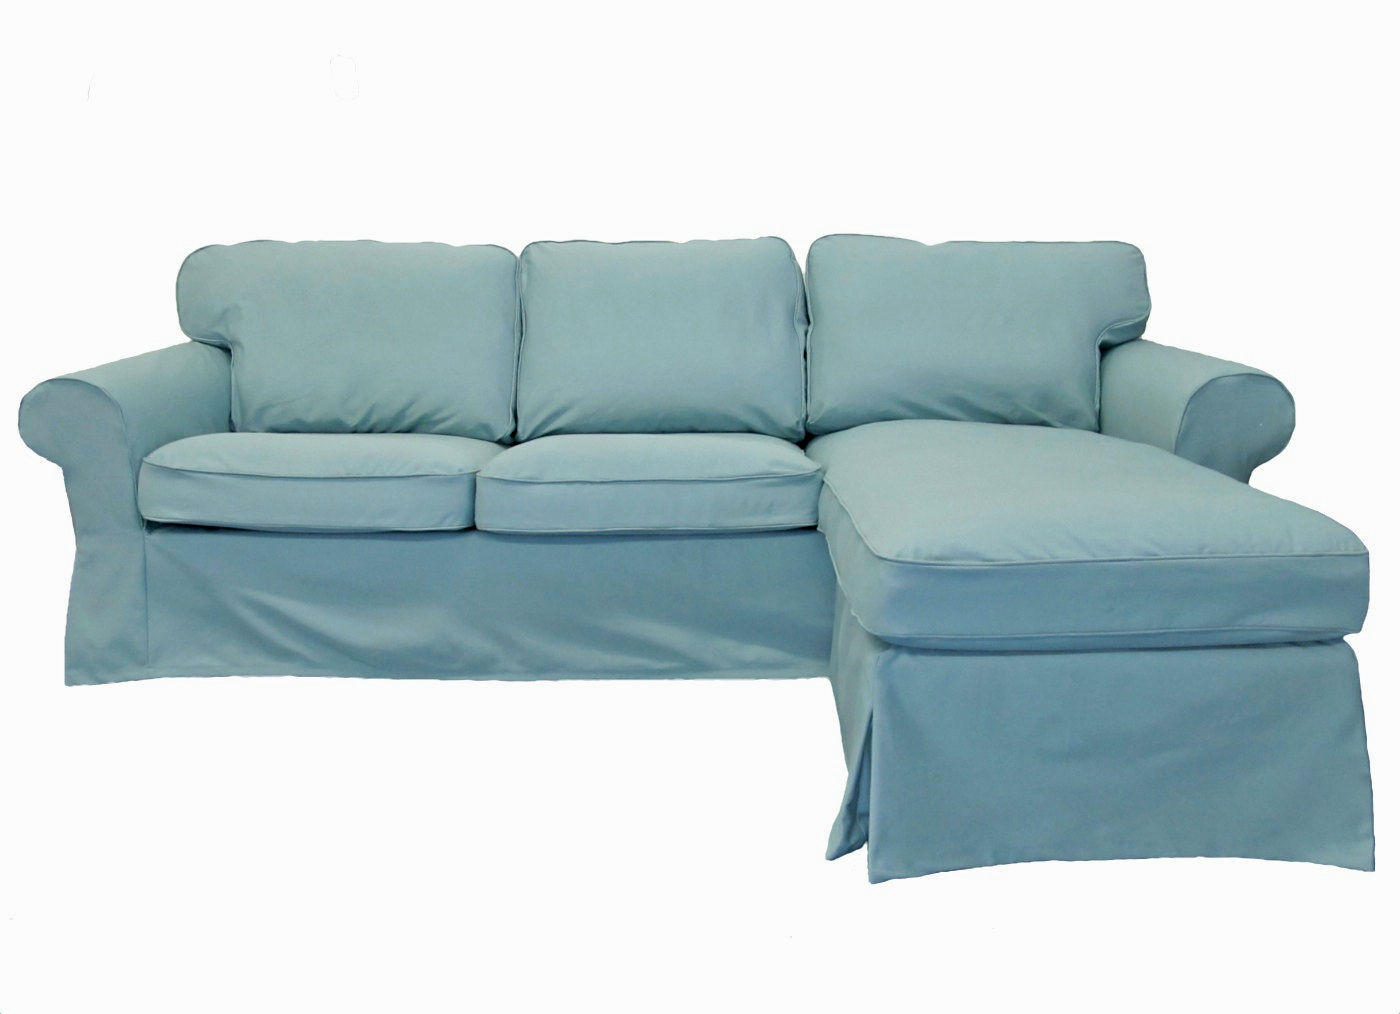 excellent best sectional sofa inspiration-Lovely Best Sectional sofa Construction